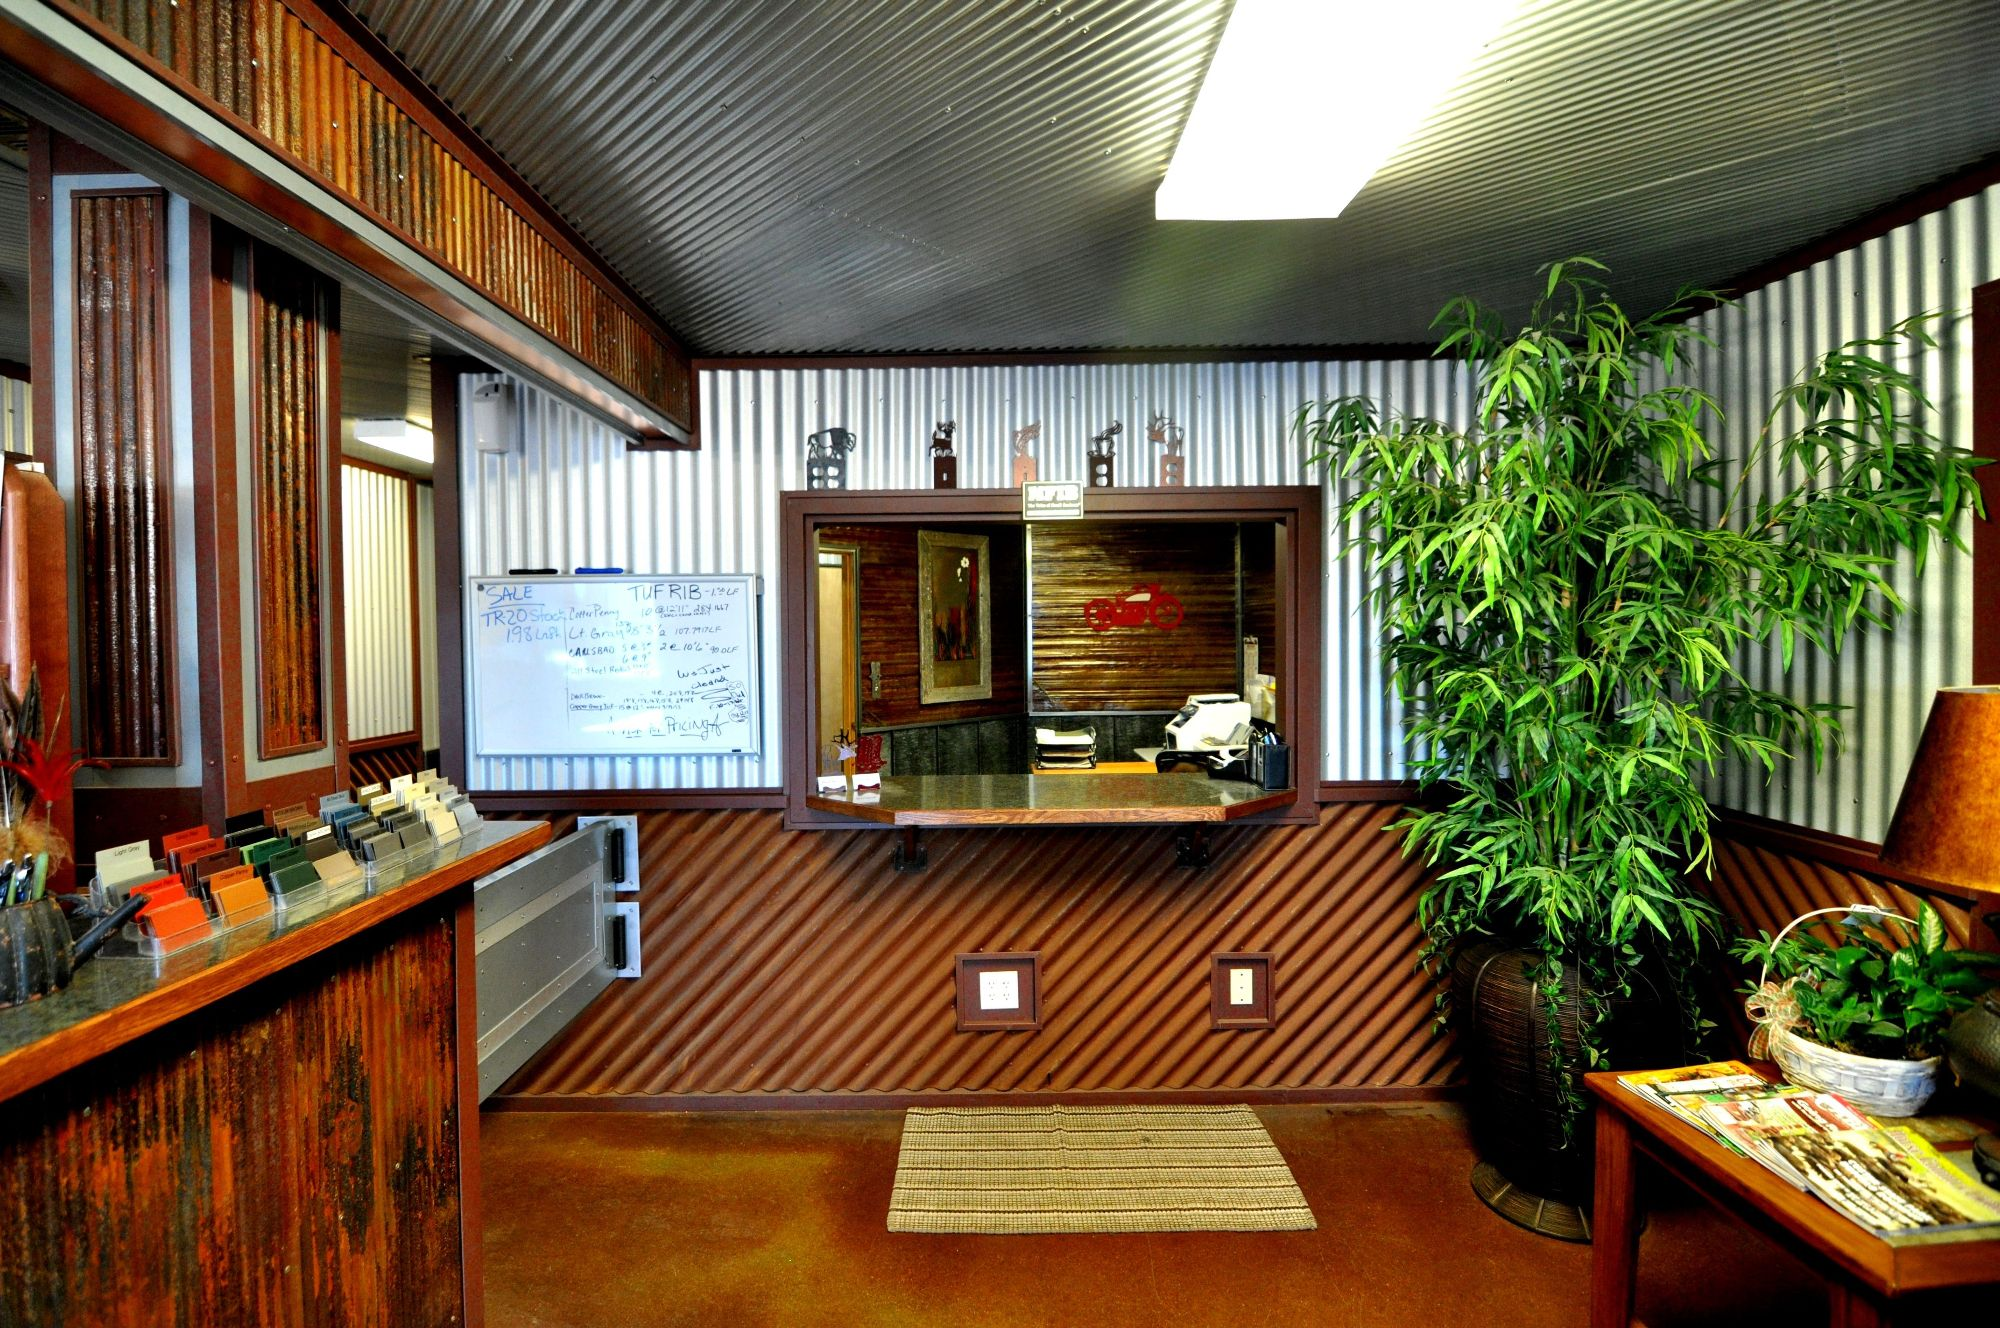 Corrugated Metal Home Remodeling Costs Guide